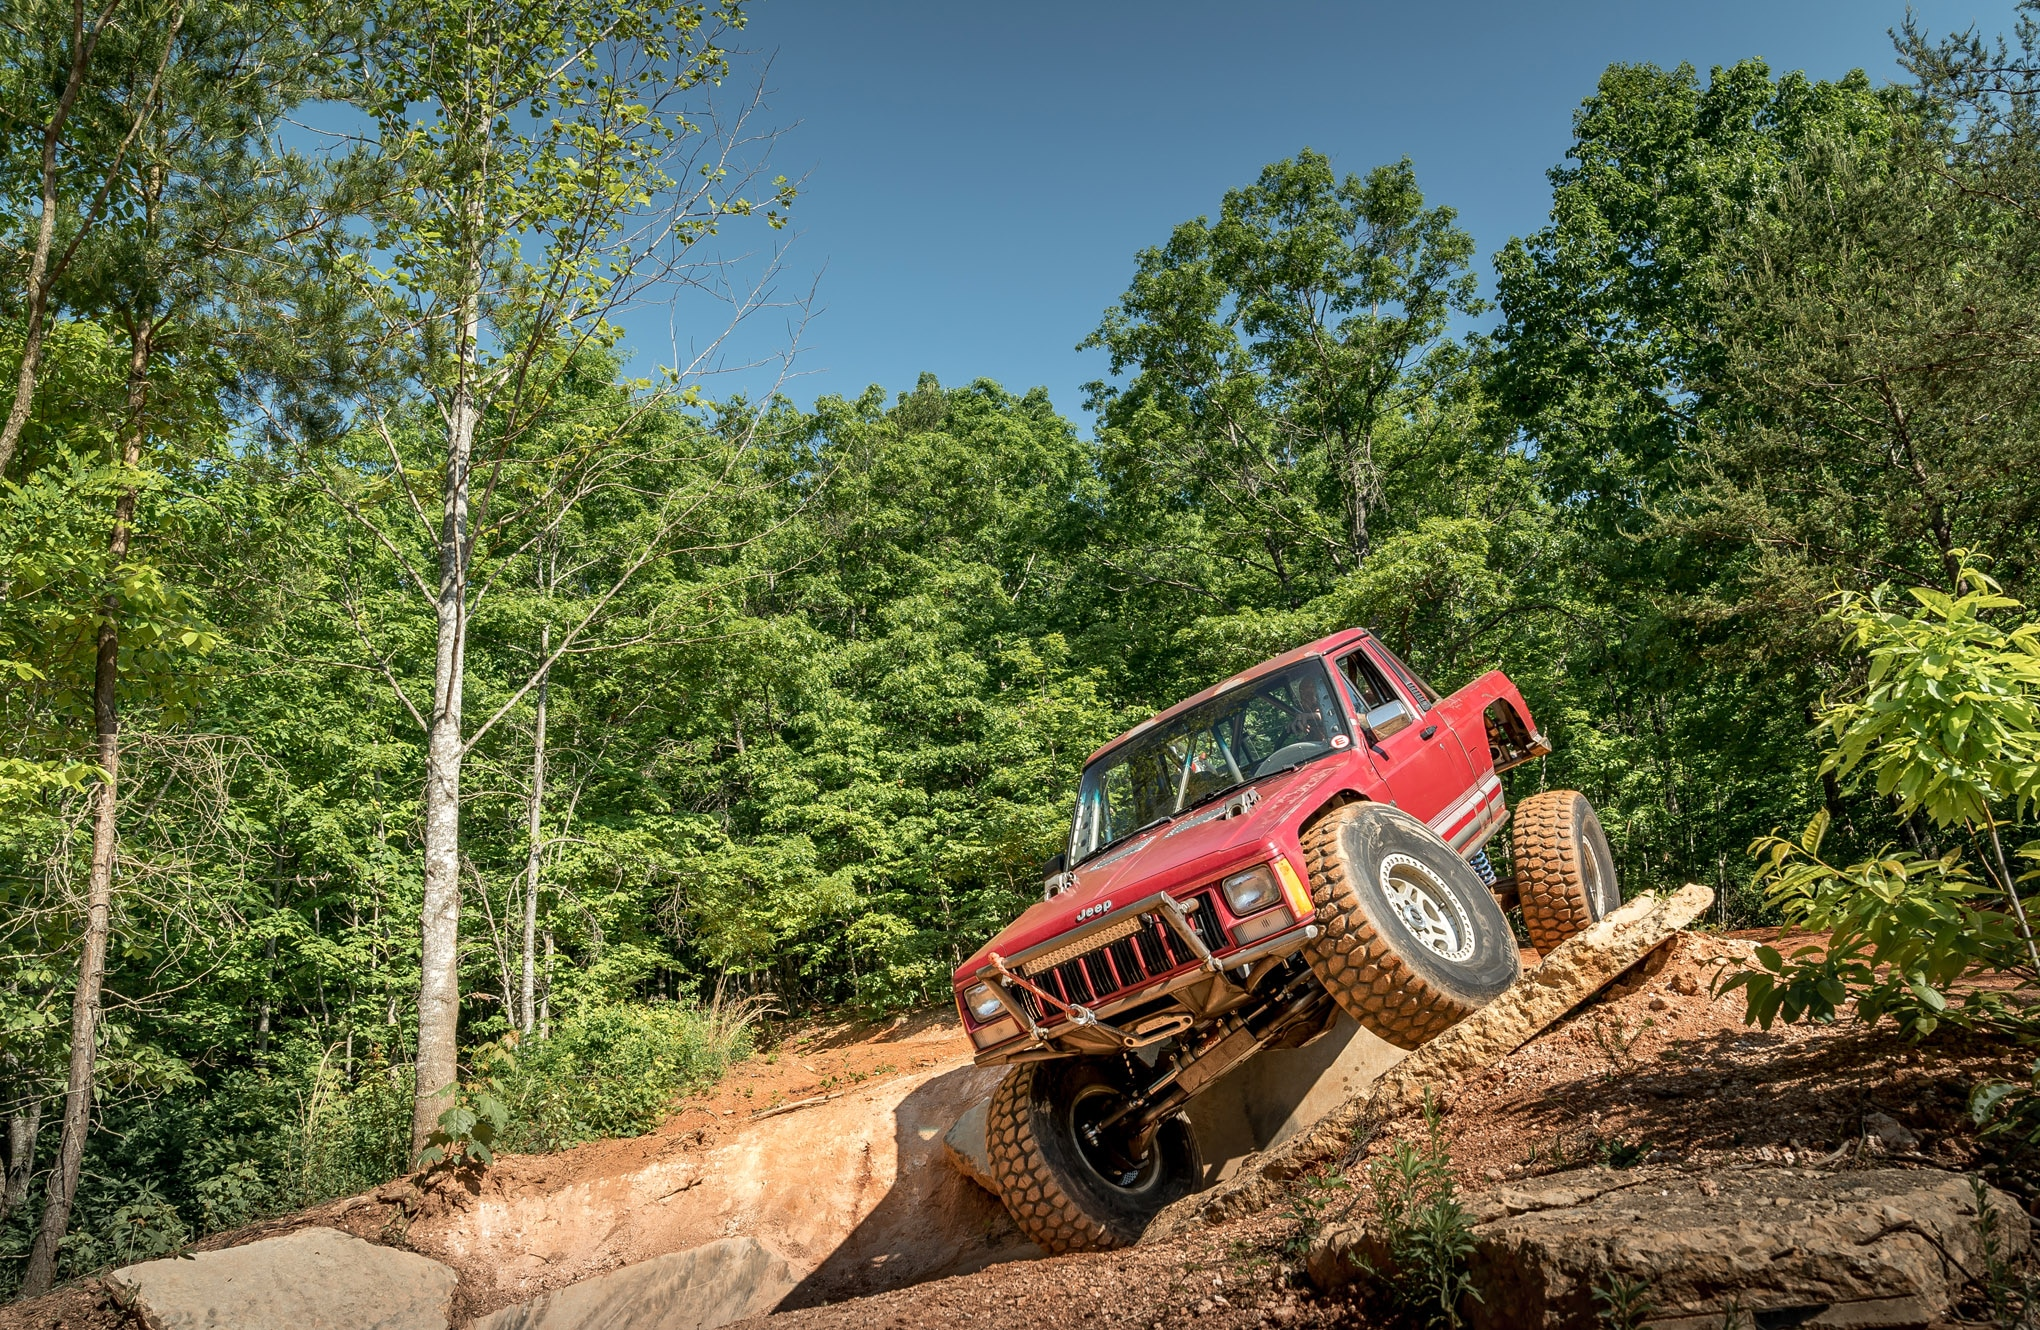 2WD to 4WD With Junkyard Parts - Jp Magazine